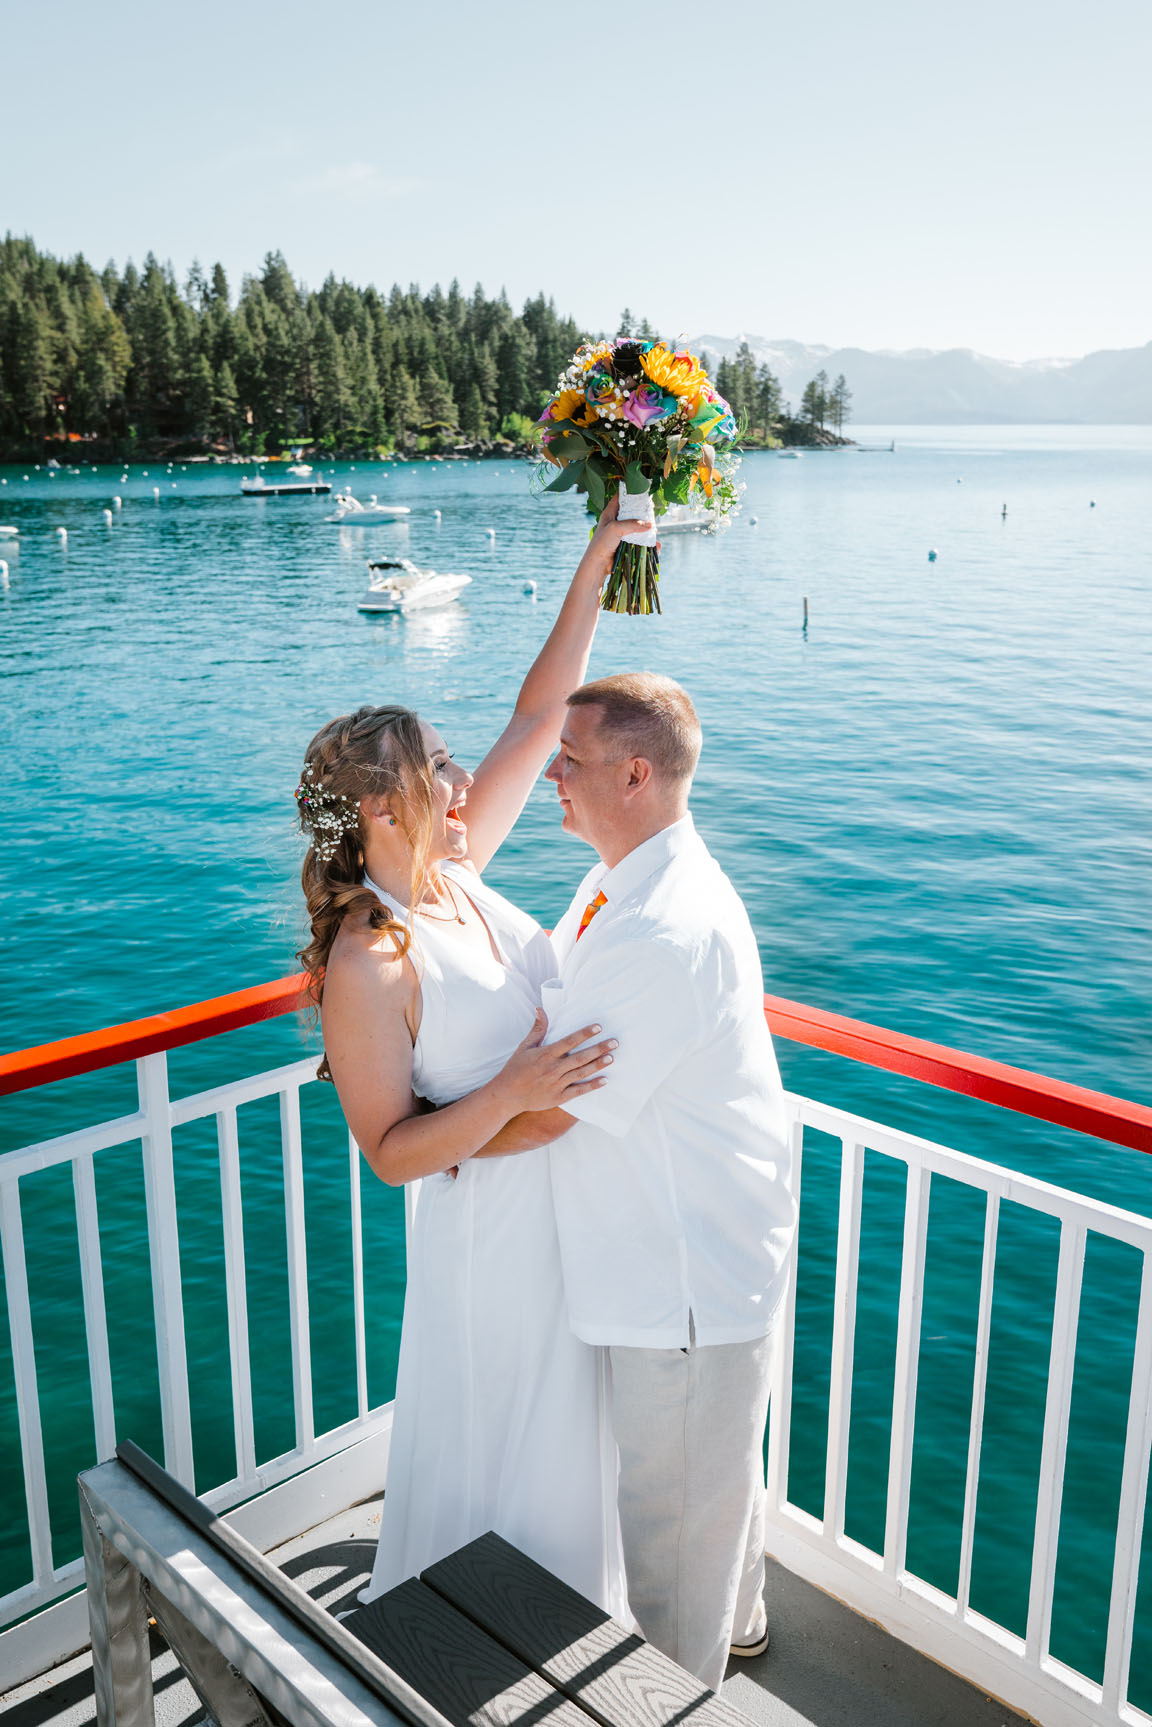 Zephyr Cove Wedding | South Lake Tahoe Wedding | Sonora Photographer | Yosemite Elopement Photographer Bessie Young